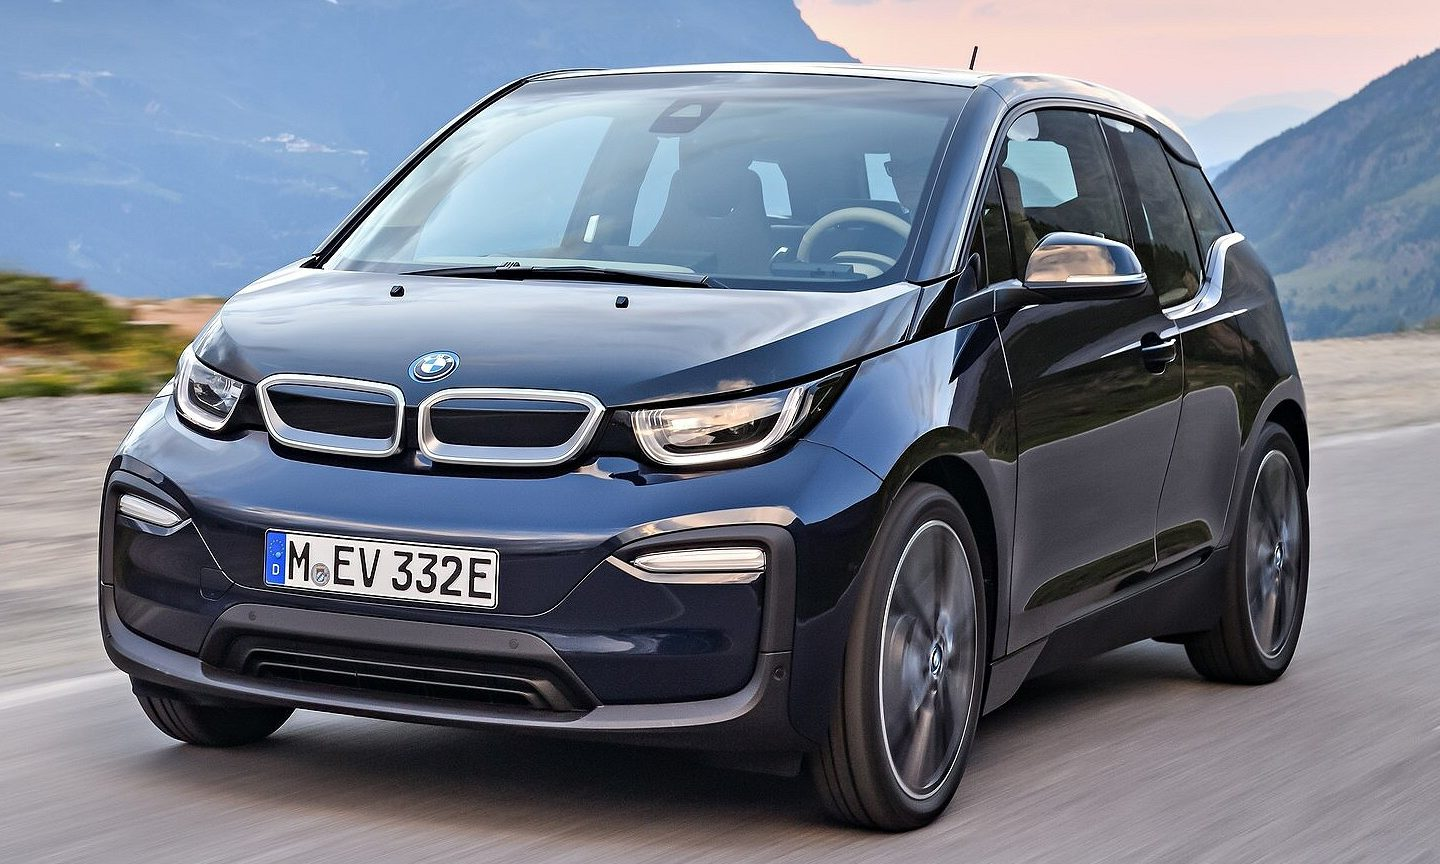 BMW i3 electric vehicle.